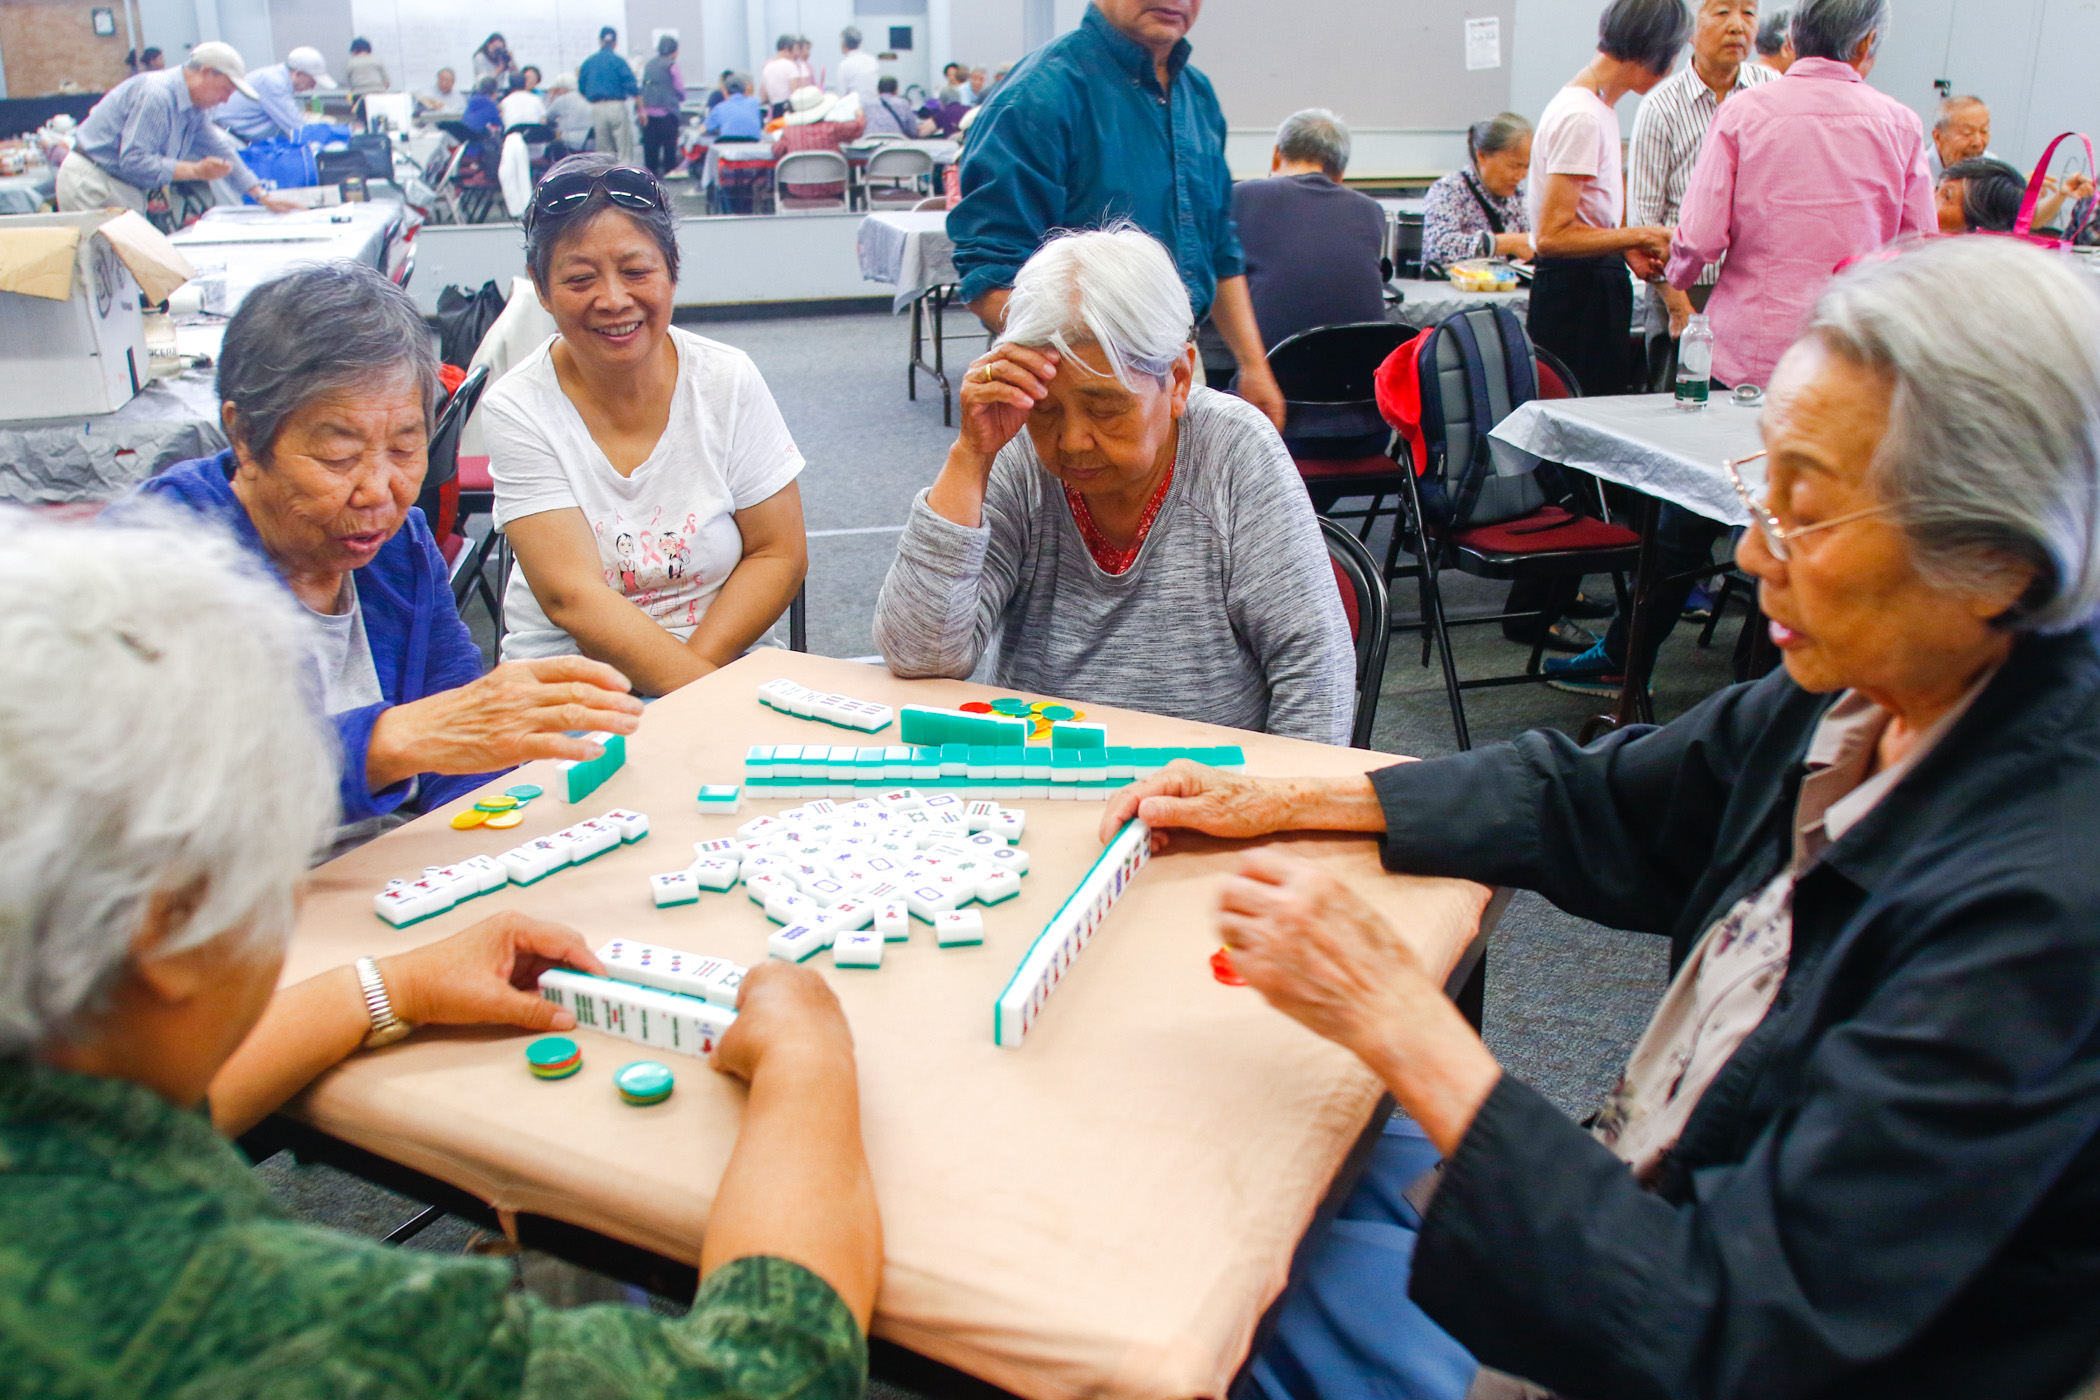 Participants of Senior Friendship Day play a game of mahjong in room M-4.The program has been offered at Cubberley for 23 years, serving about 150 seniors.